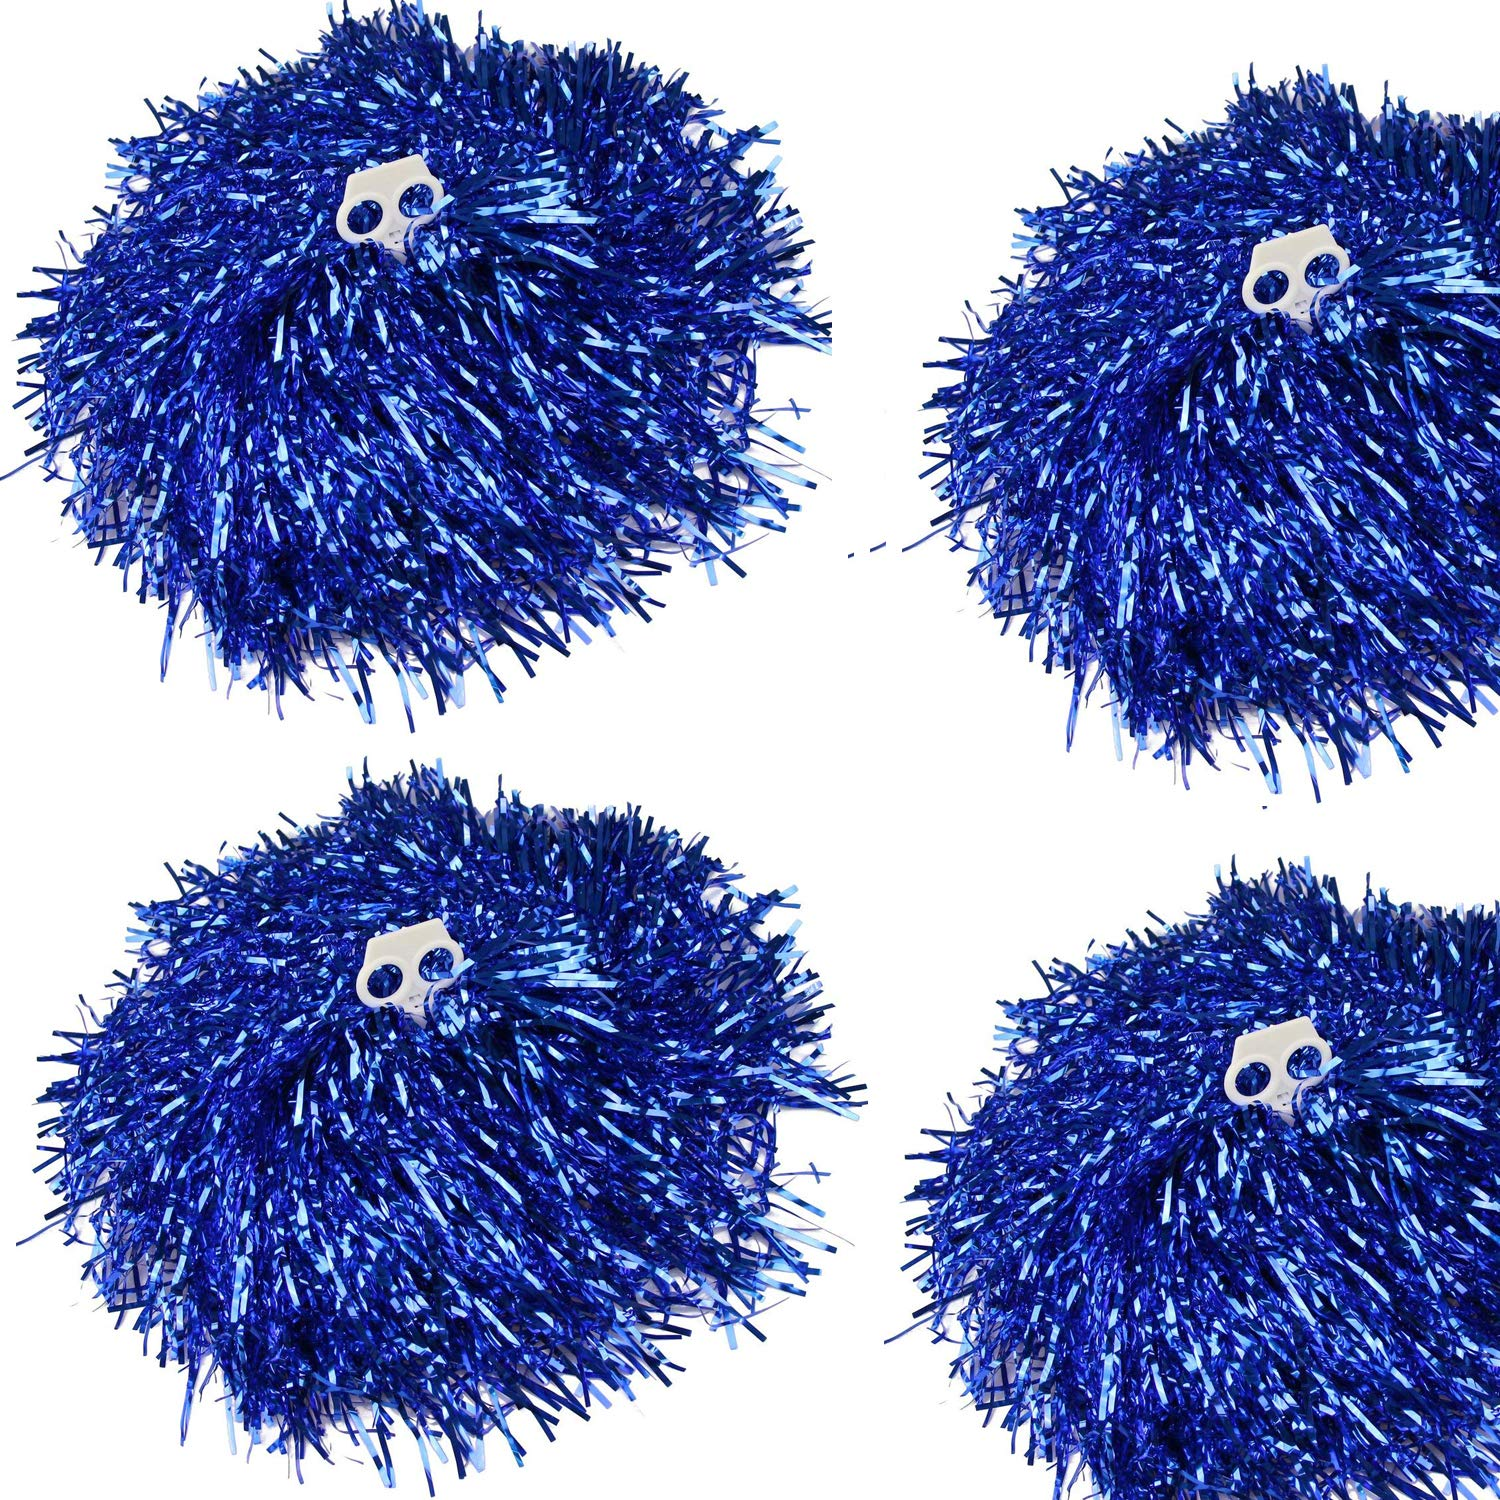 CRIVERS 4PC Cheerleading Pom Poms, Cheerleader Pompons für Ball Dance Kostüm Night Party Sports (blau, 100g)